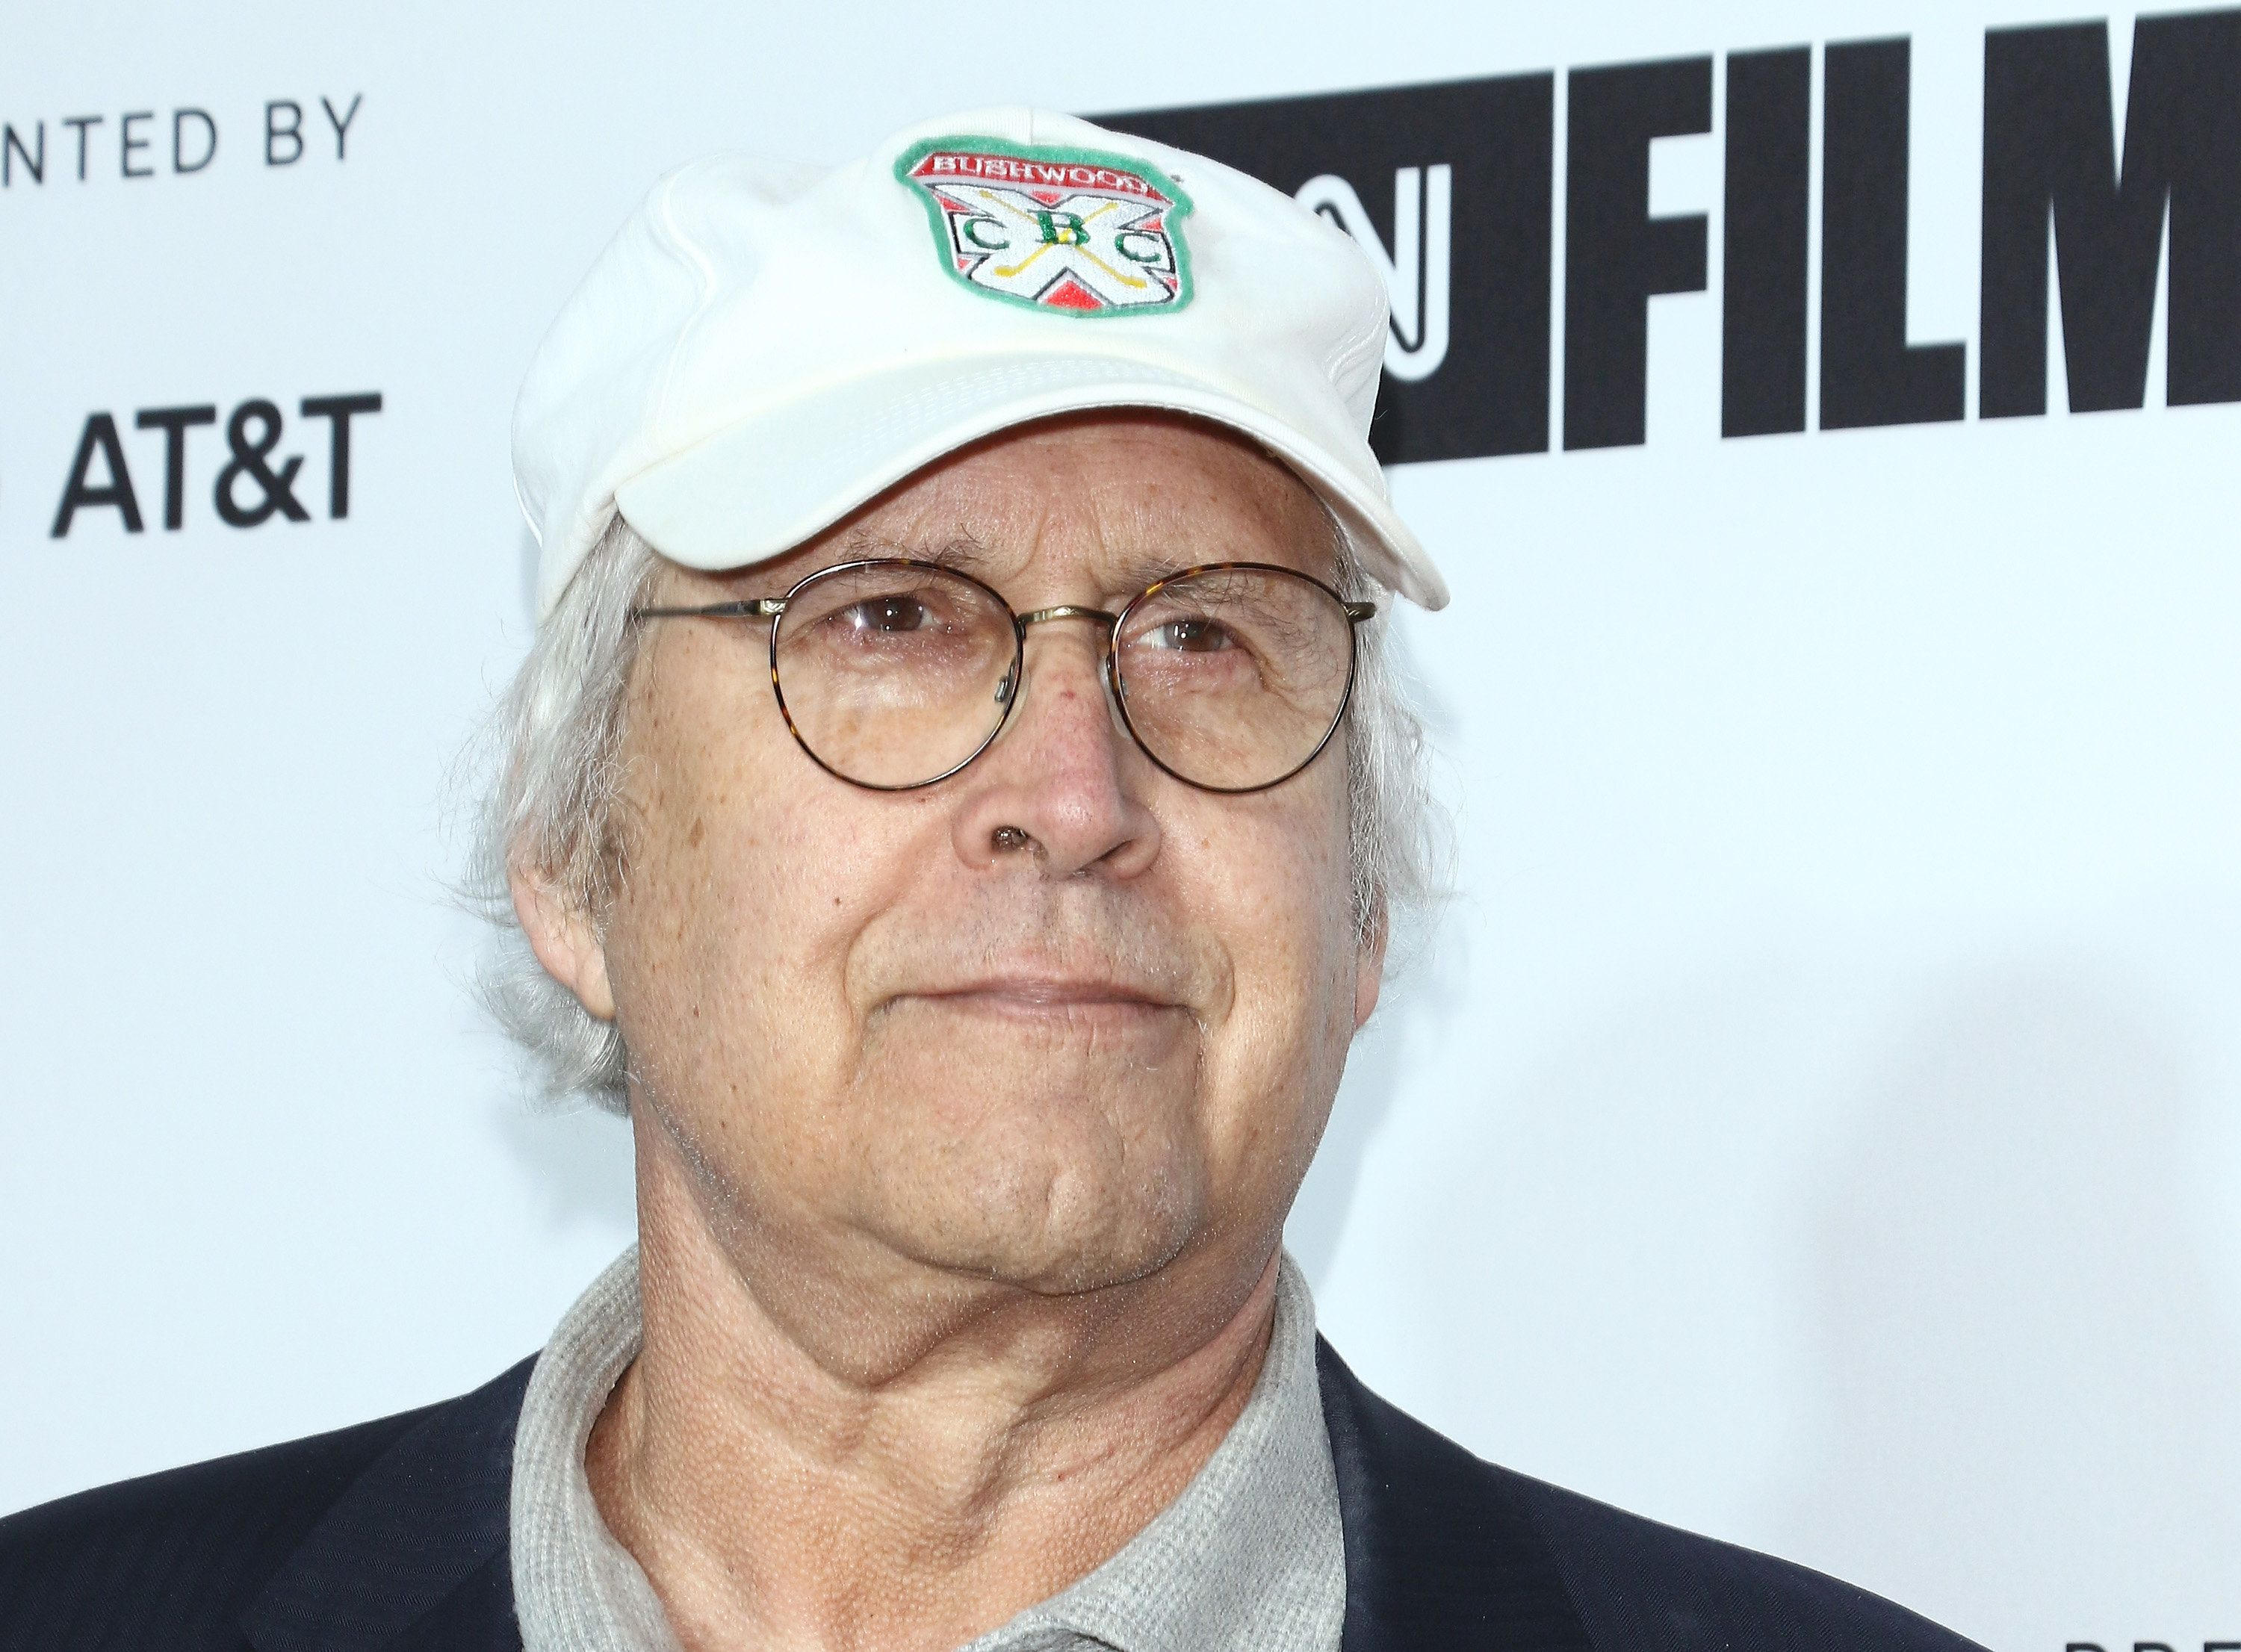 NEW YORK, NY - APRIL 18:  Actor Chevy Chase attends the 2018 Tribeca Film Festival opening night premiere of 'Love, Gilda' at Beacon Theatre on April 18, 2018 in New York City.  (Photo by Jim Spellman/WireImage)